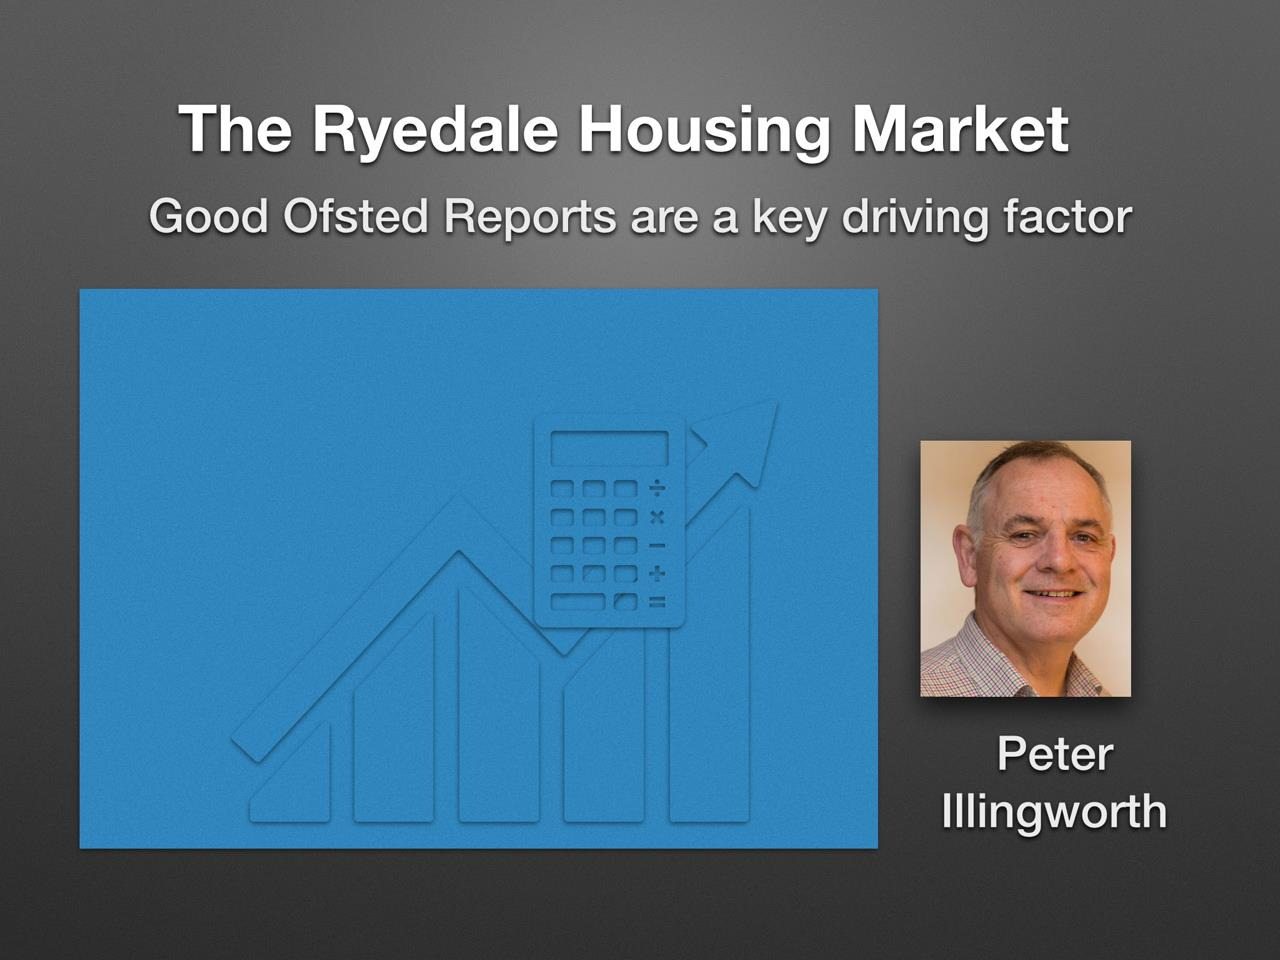 Good Ofsted Reports are a key Driving Factor for the Ryedale Housing Market